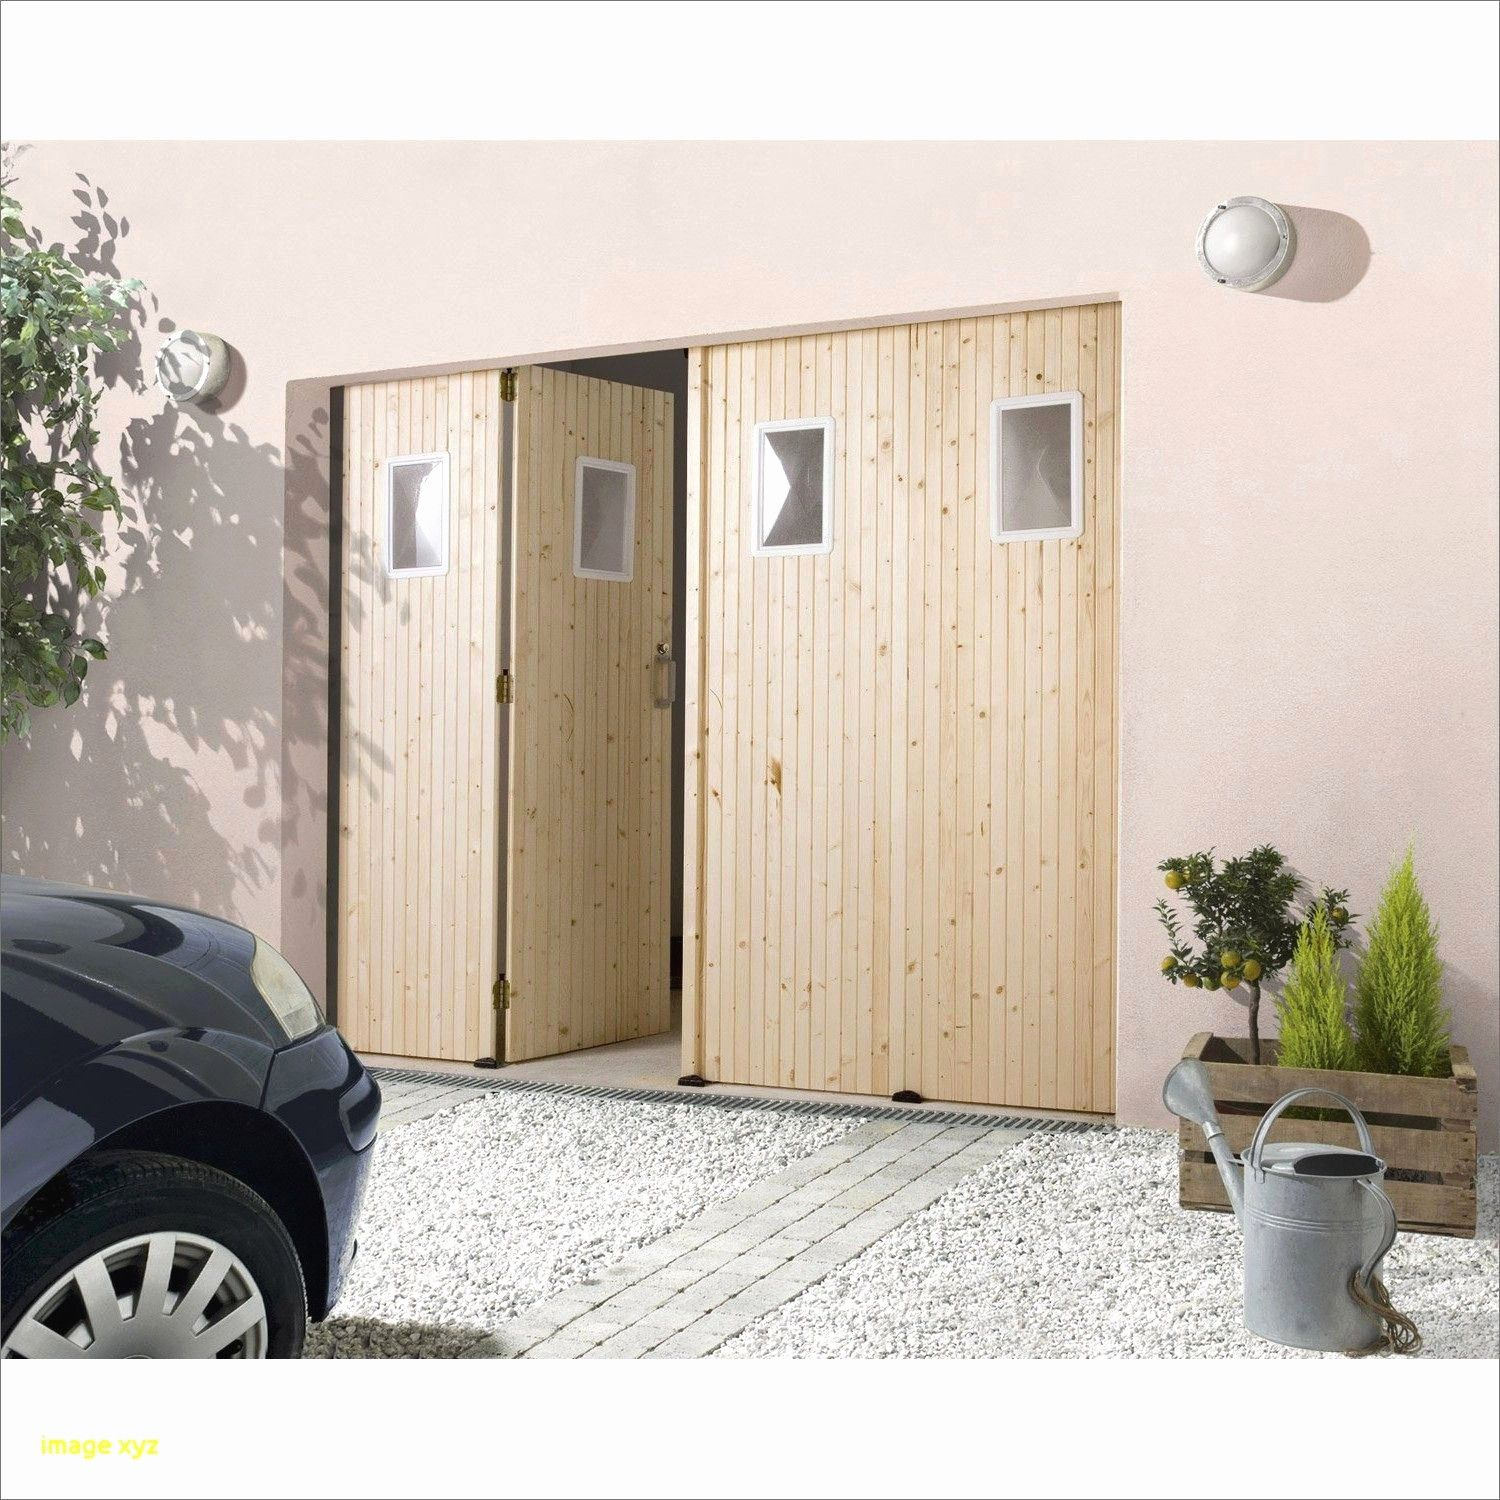 Fresh Porte De Garage Coulissante Pvc Brico Depot Interior Design Bedroom Outdoor Decor Bedroom Interior